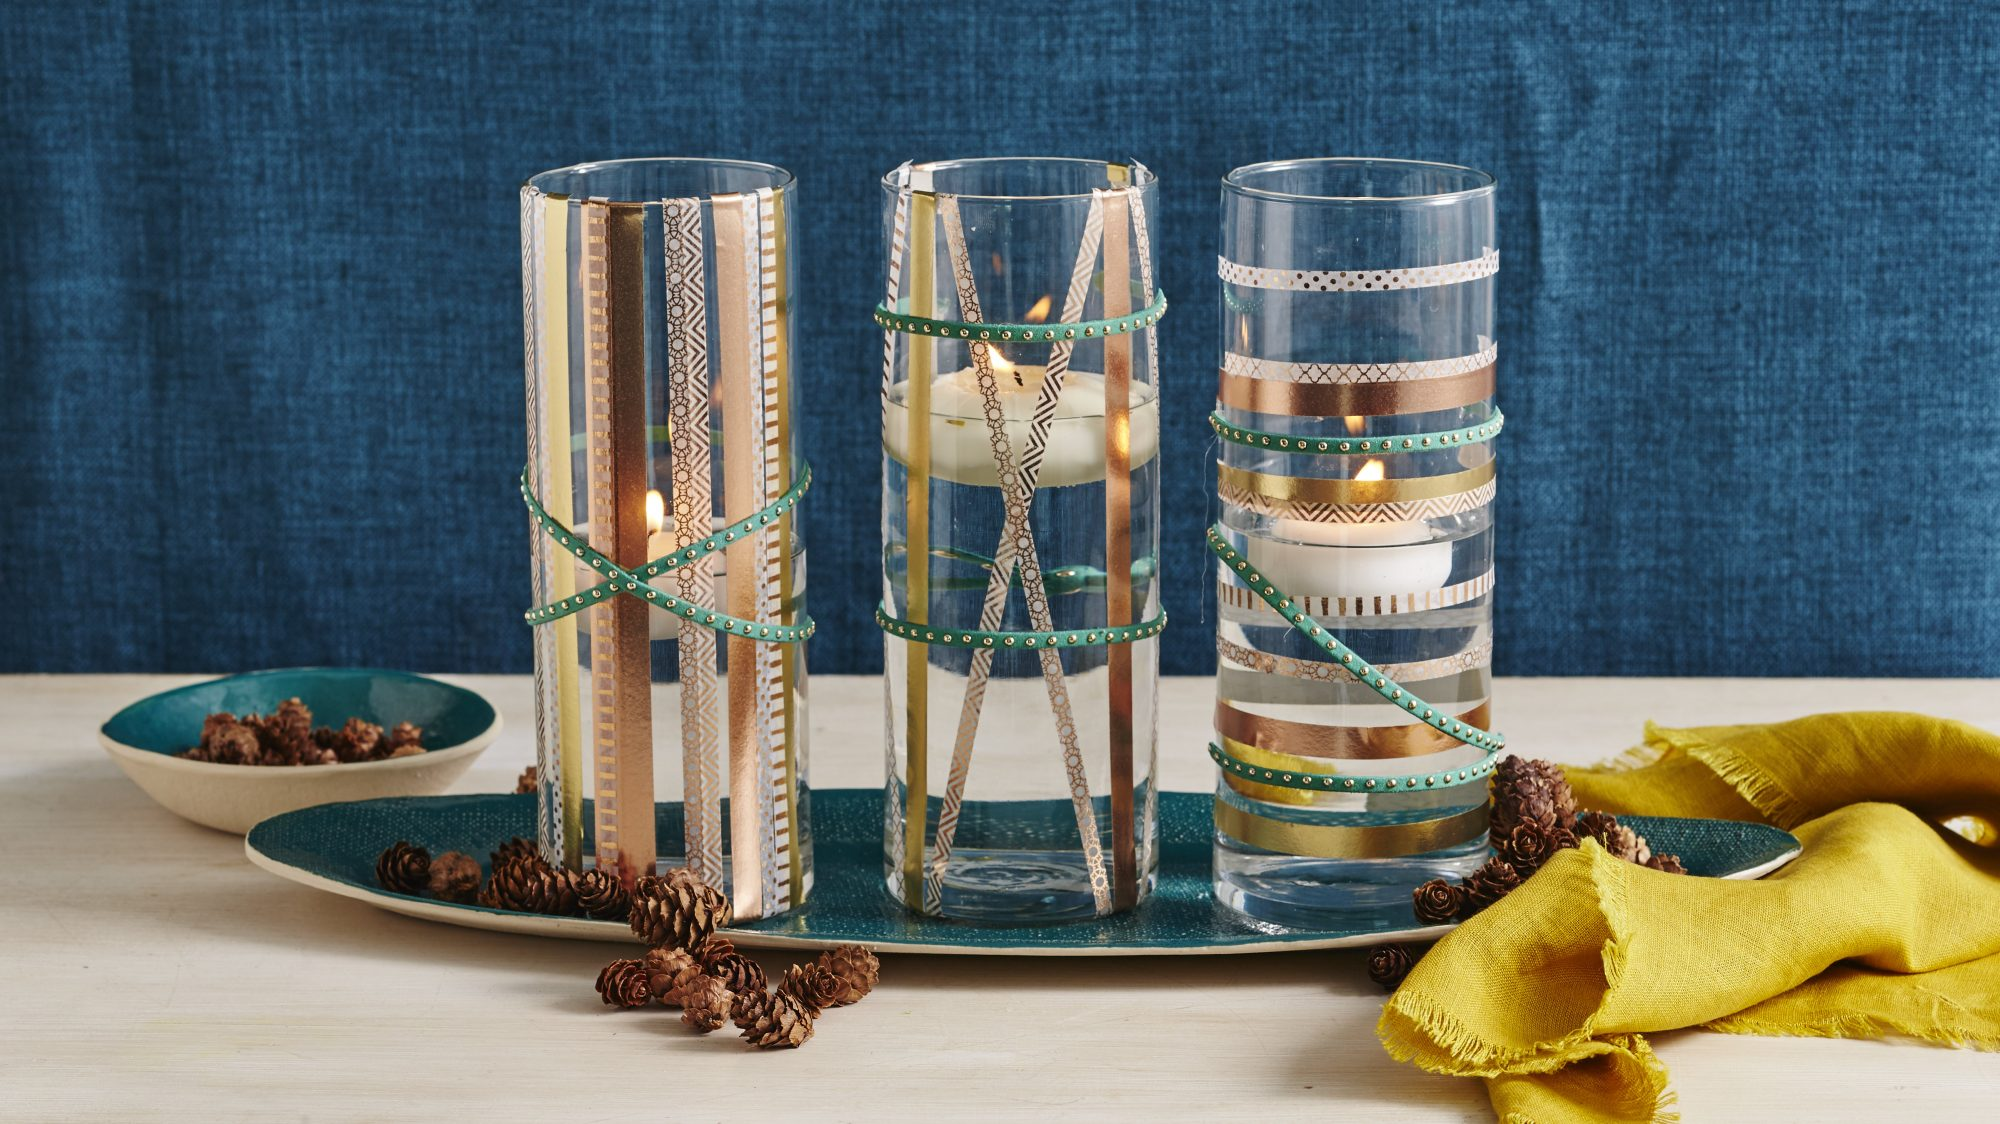 RX_1809_Fresh Fall Decorating Ideas_Foiled Floating Candleholders